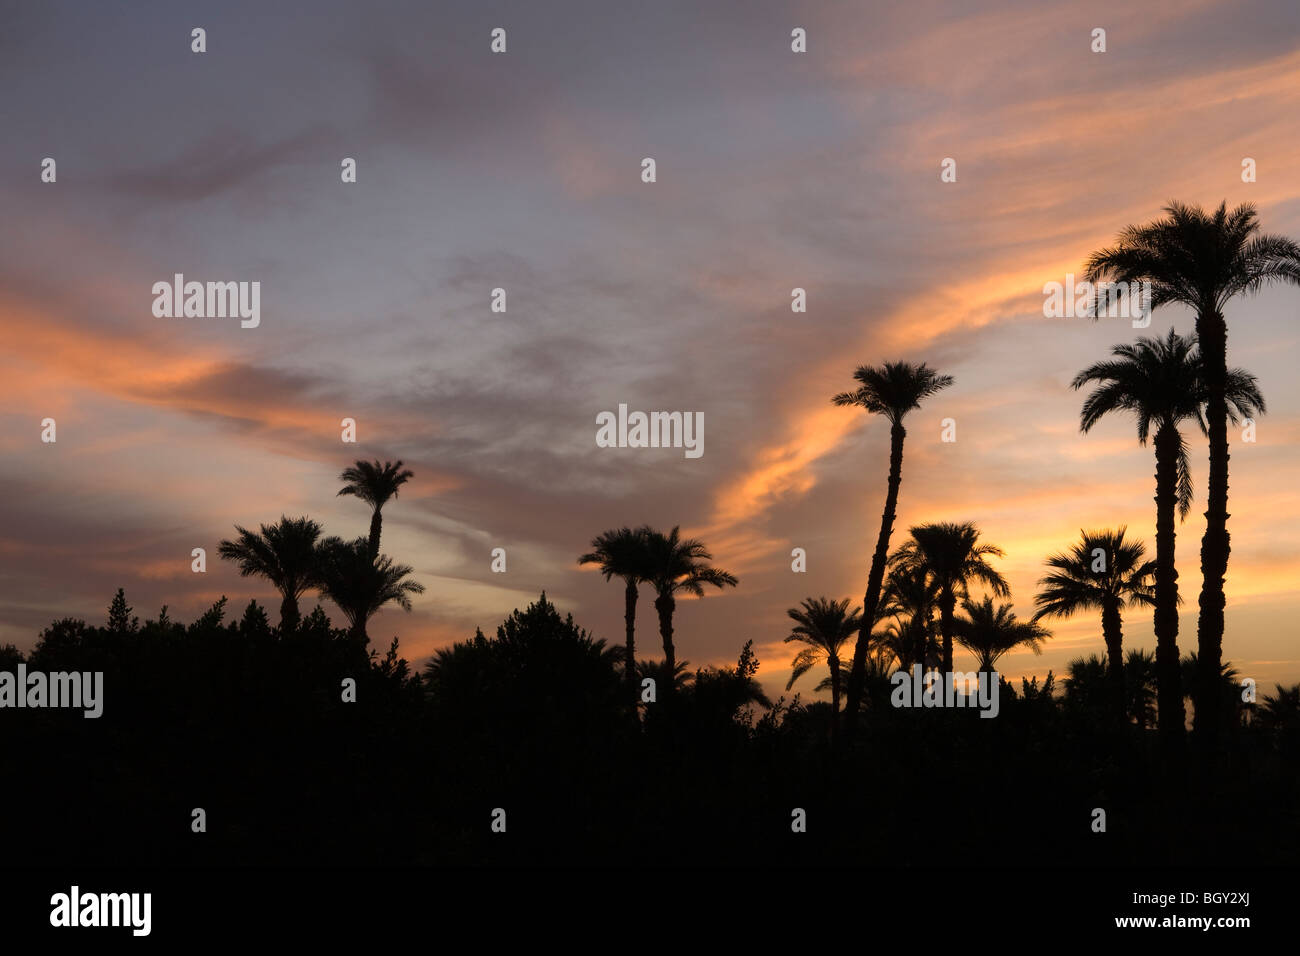 Sunset colours seen through Palm trees in Luxor, Egypt - Stock Image